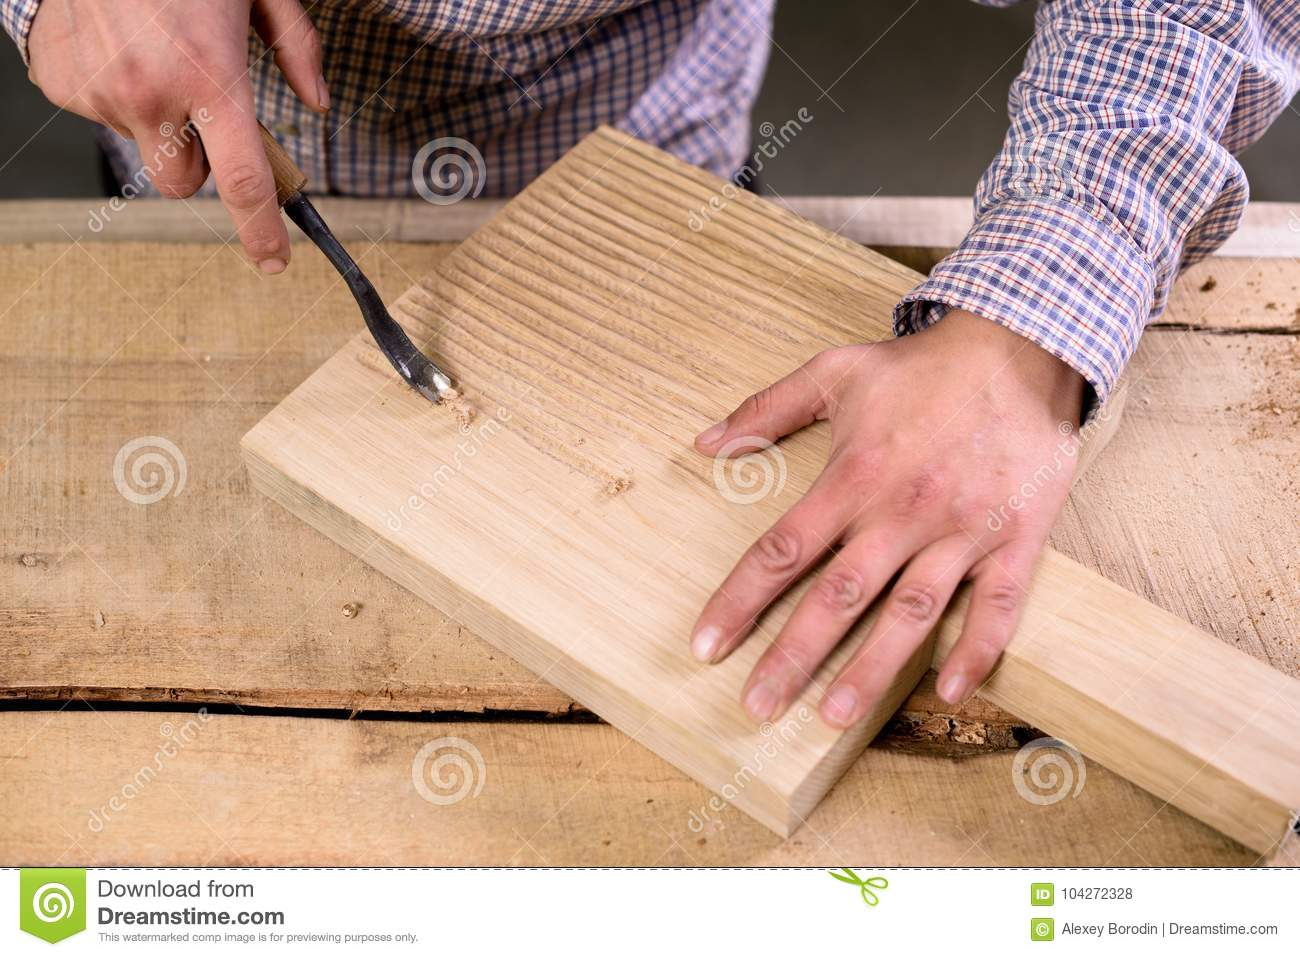 How To Make Grooves In Wood By Hand